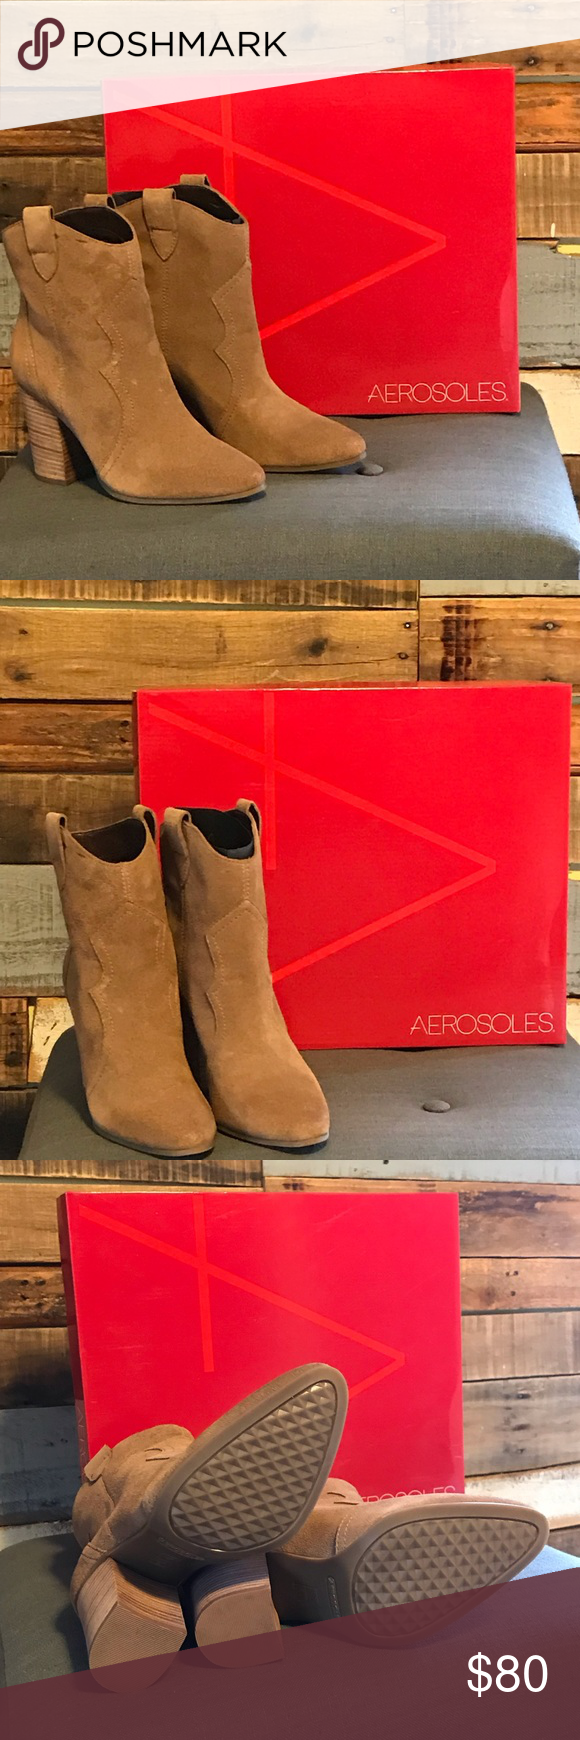 Aerosoles Women/'s Lincoln Square Ankle Boot